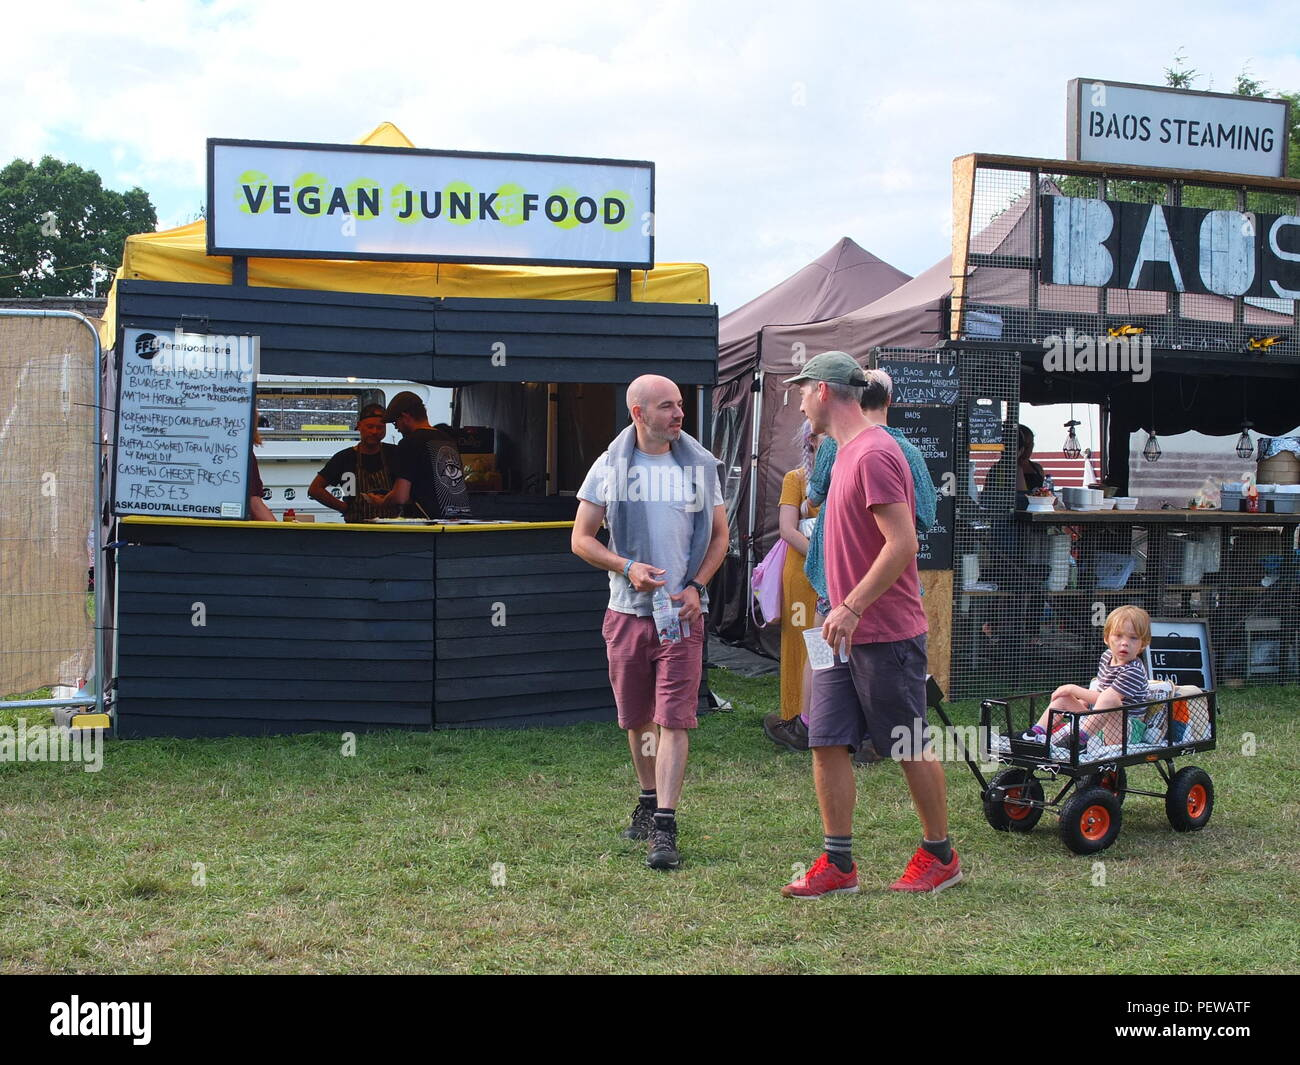 'Vegan Junk Food' stall at Green Man Festival, Wales, two men with child in cart in front of stall, vegan fast food - Stock Image